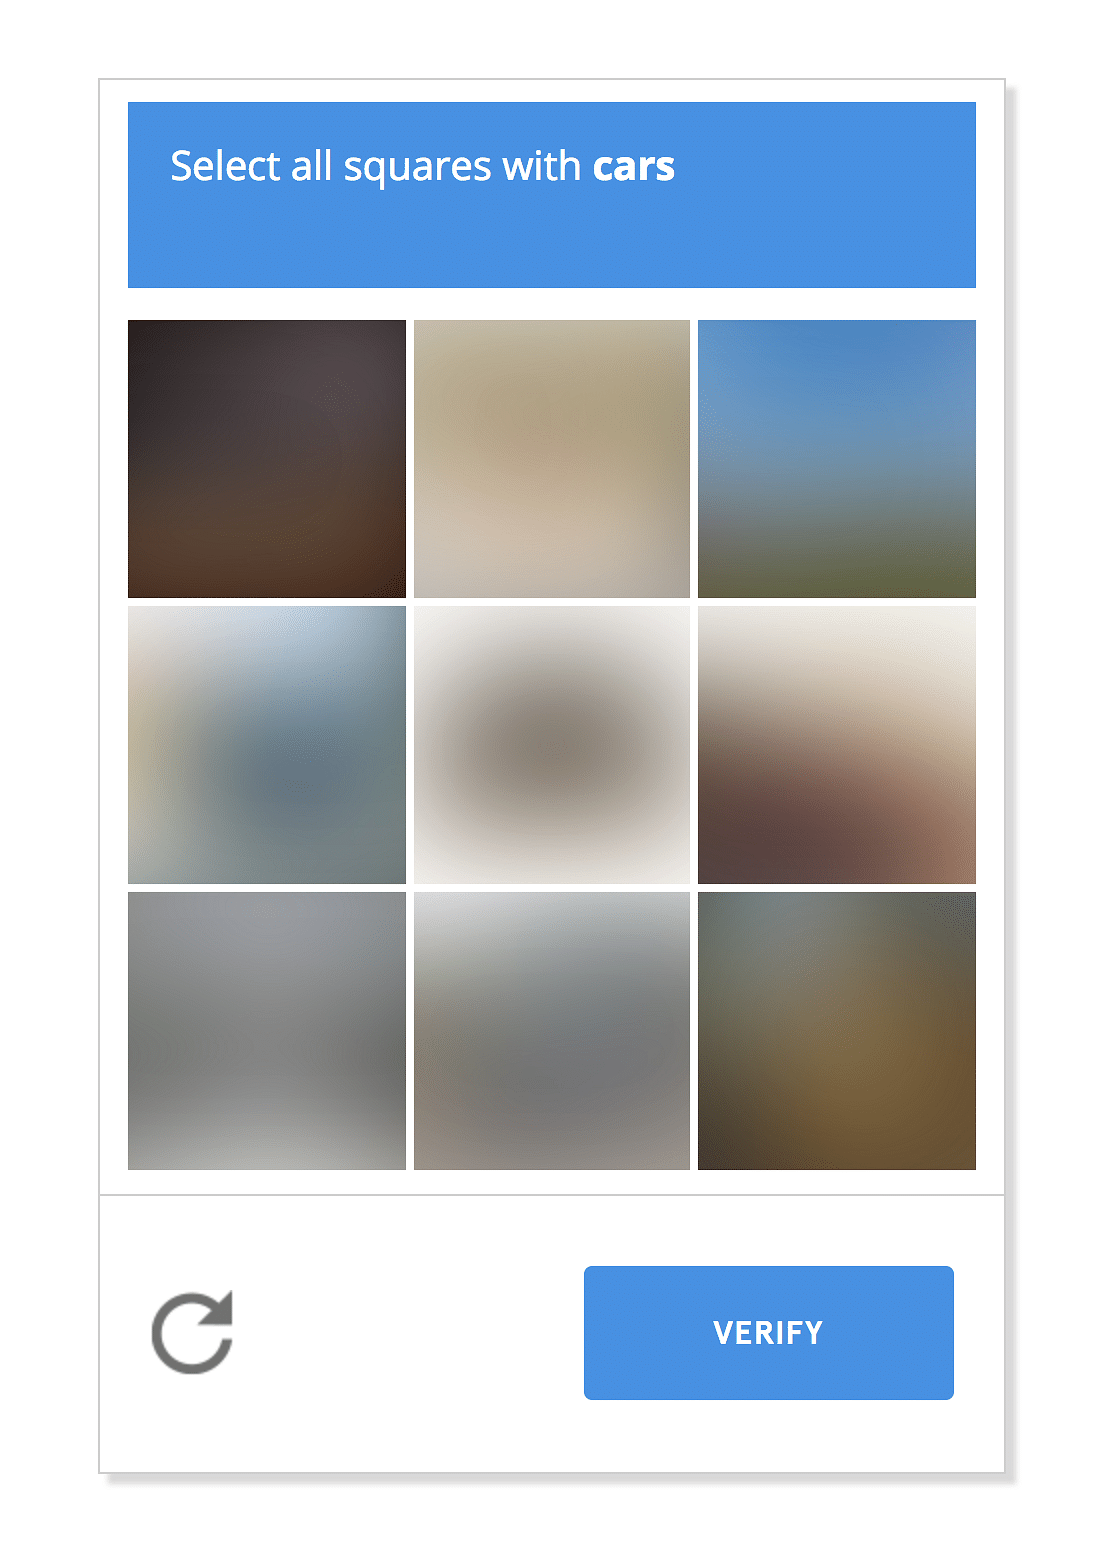 Identifying CAPTCHA can be time consuming.